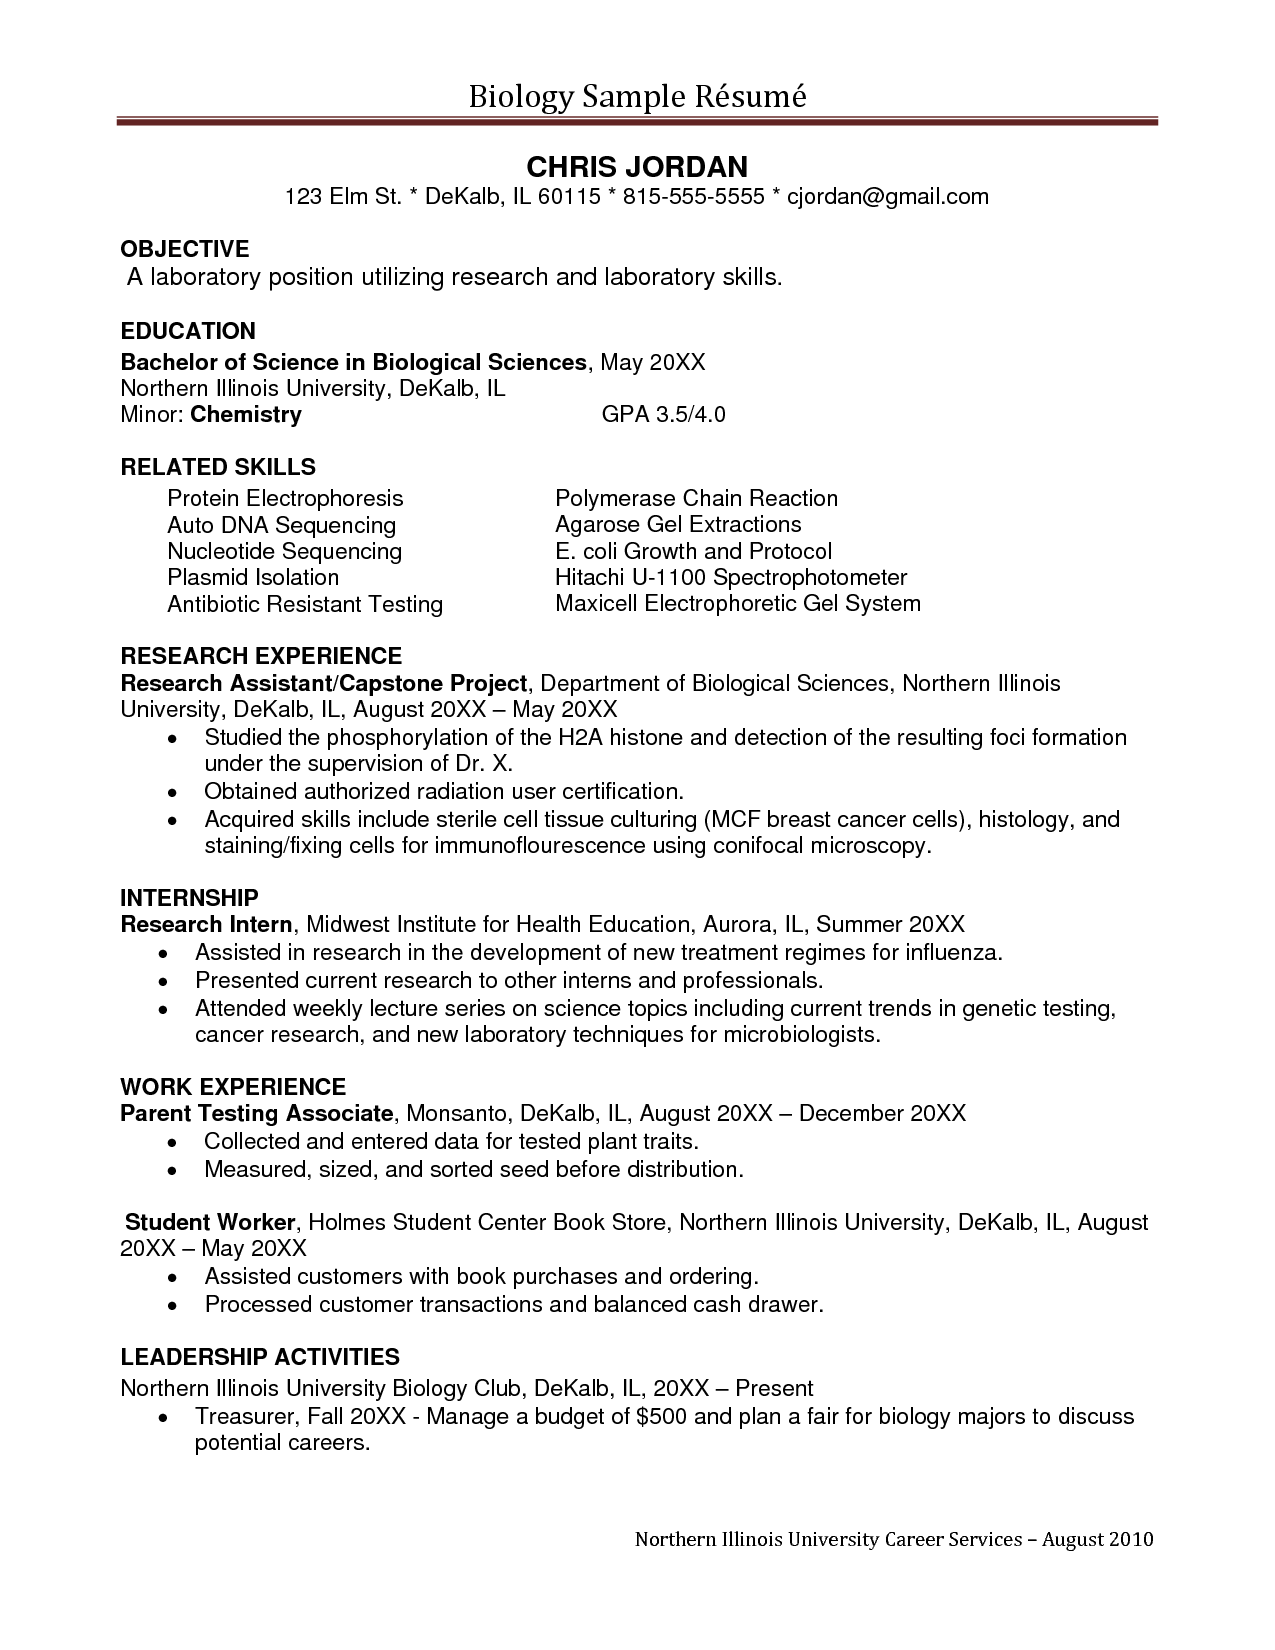 Best Resume Objectives Sample Undergraduate Research Assistant Resume Sampleĺ